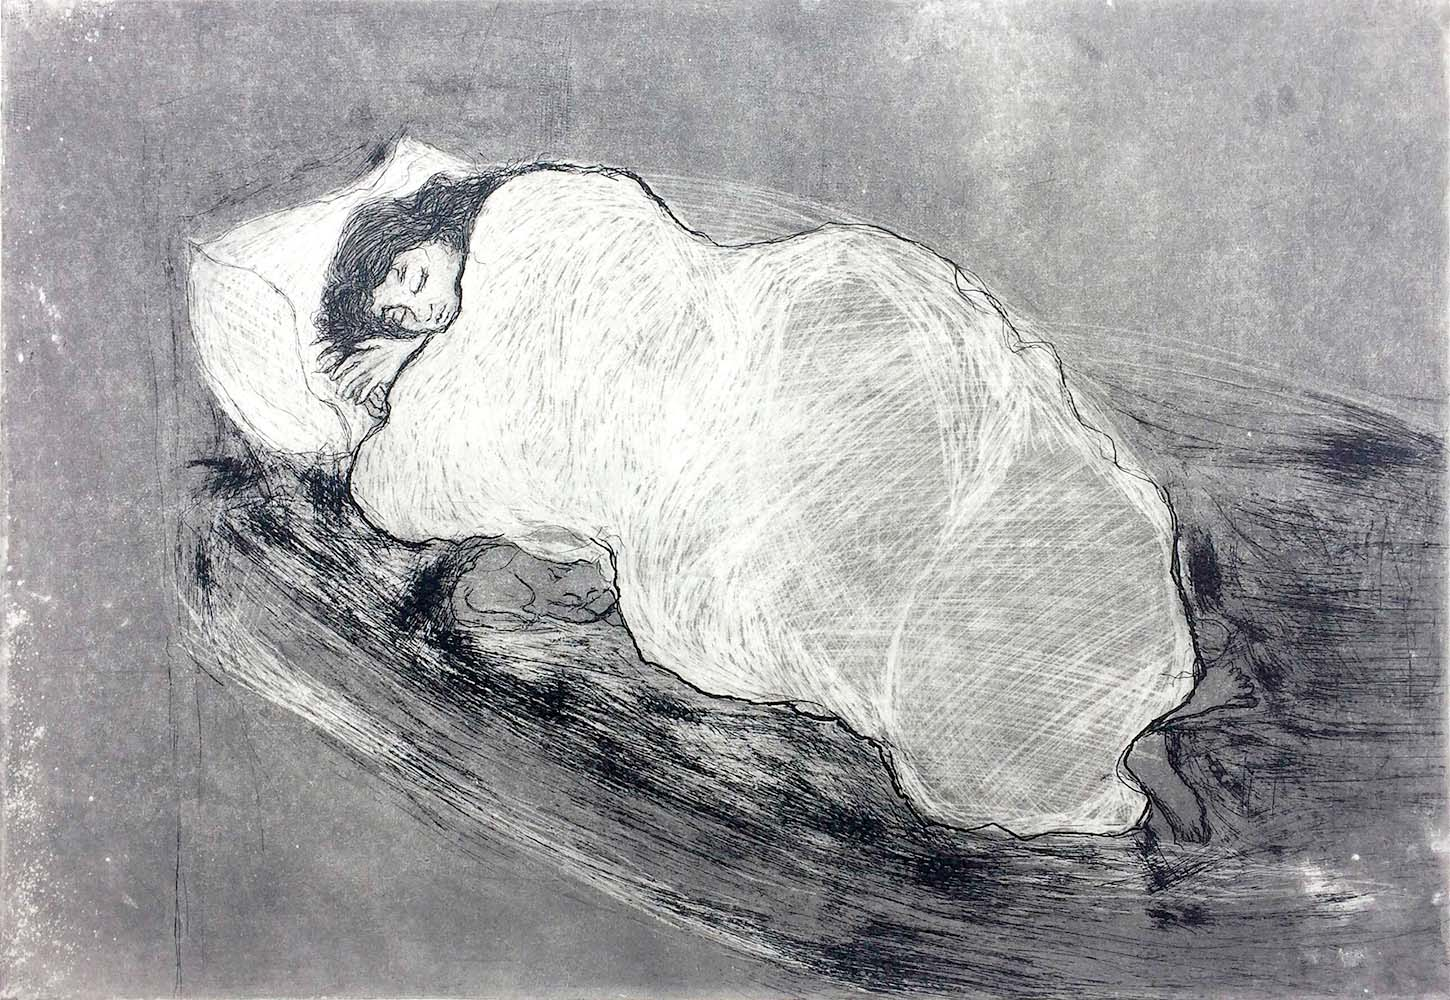 A drawing by Azza Abo Rebieh that is inspired by her time in prison in Damascus. (Galerie Alice Mogabgab)